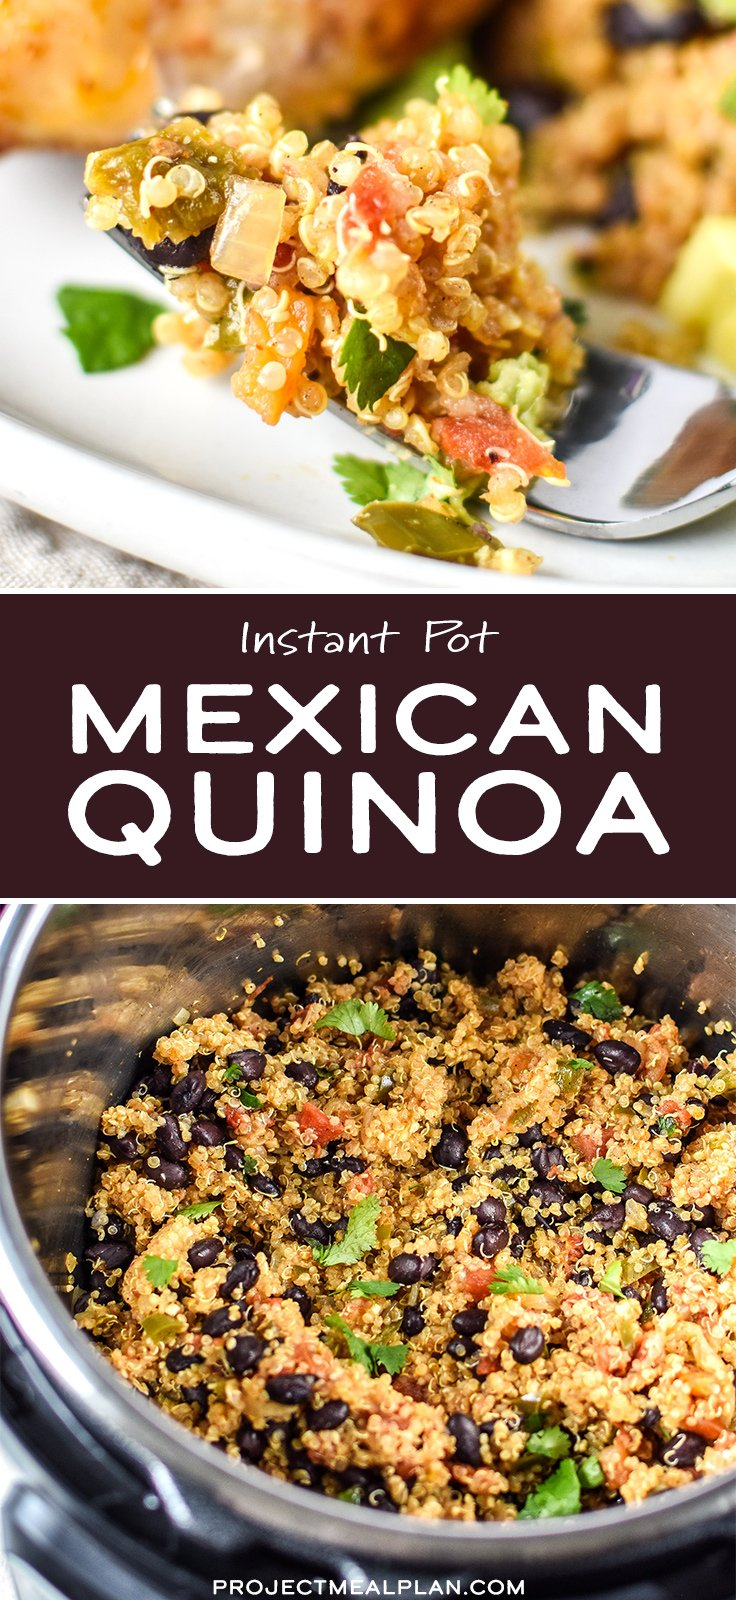 How To Cook Quinoa In Instant Pot Video